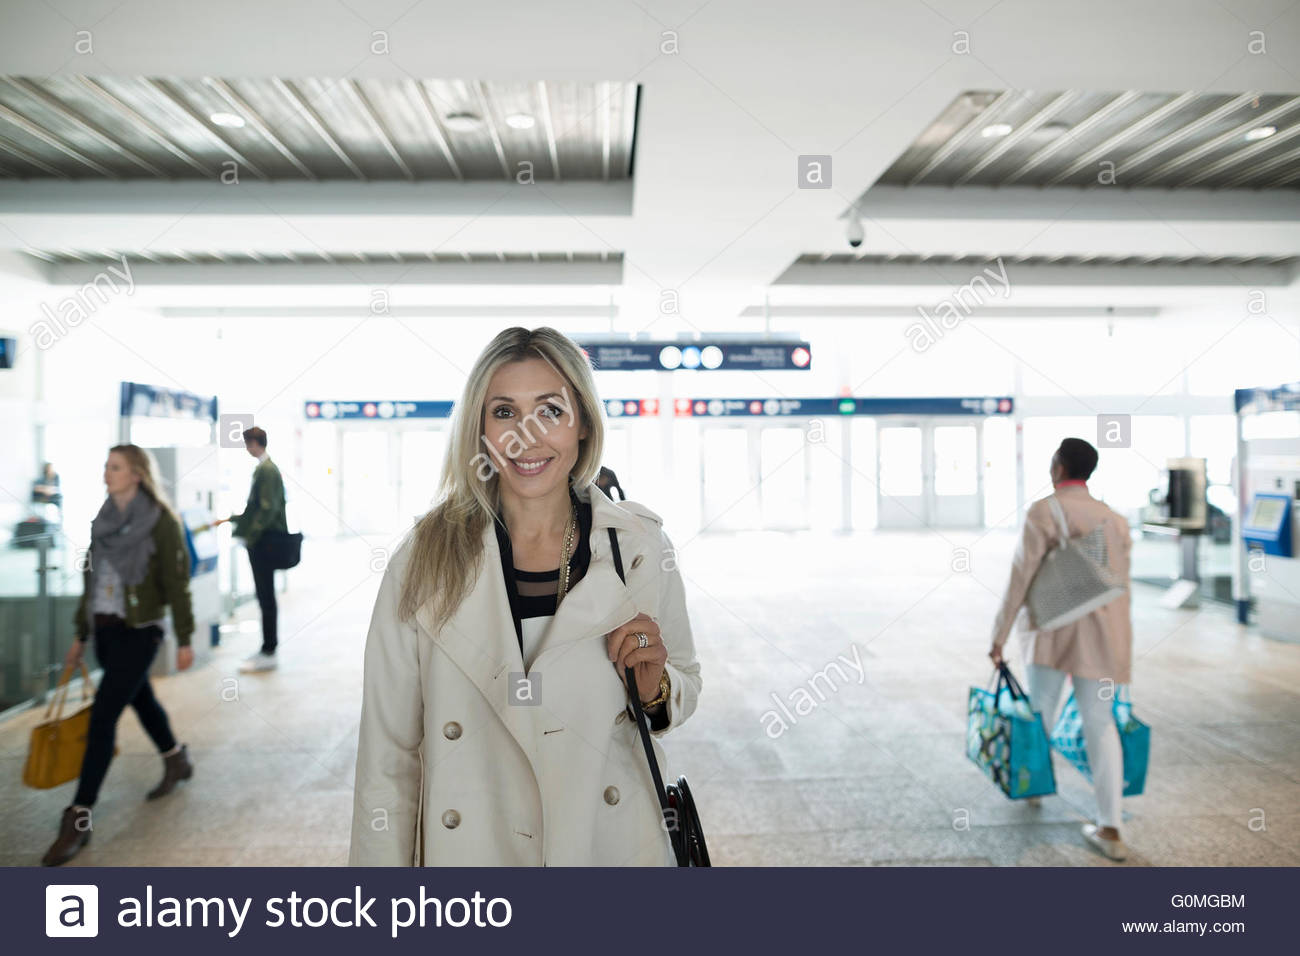 Portrait woman standing in train station entrance - Stock Image